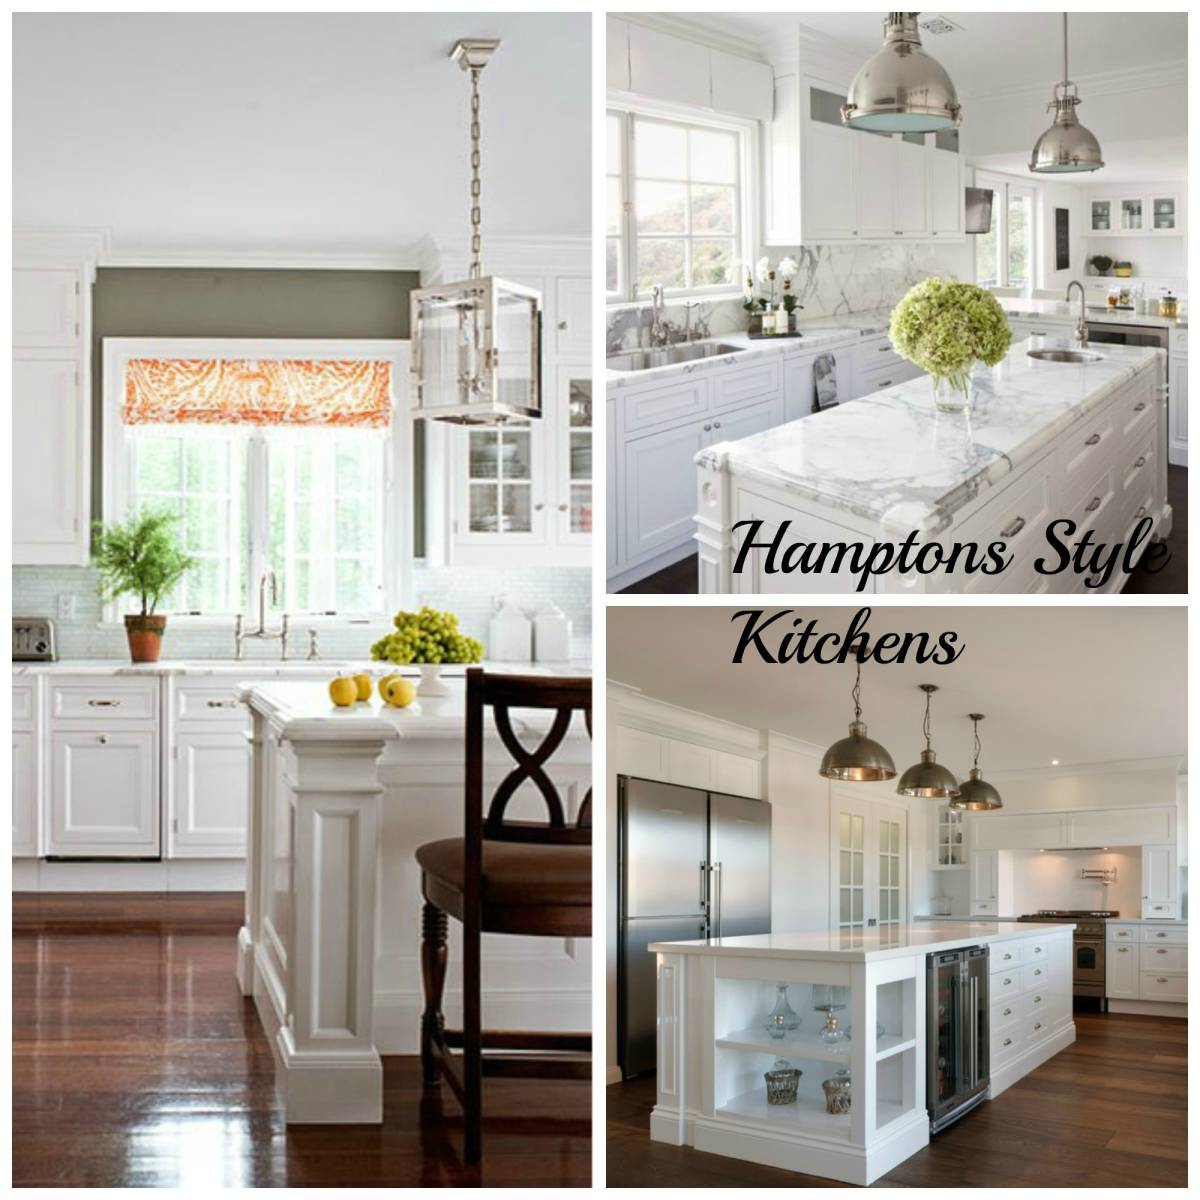 Hamptons Style Lighting: 5 Hamptons Style Kitchen Designs-Inspired Space